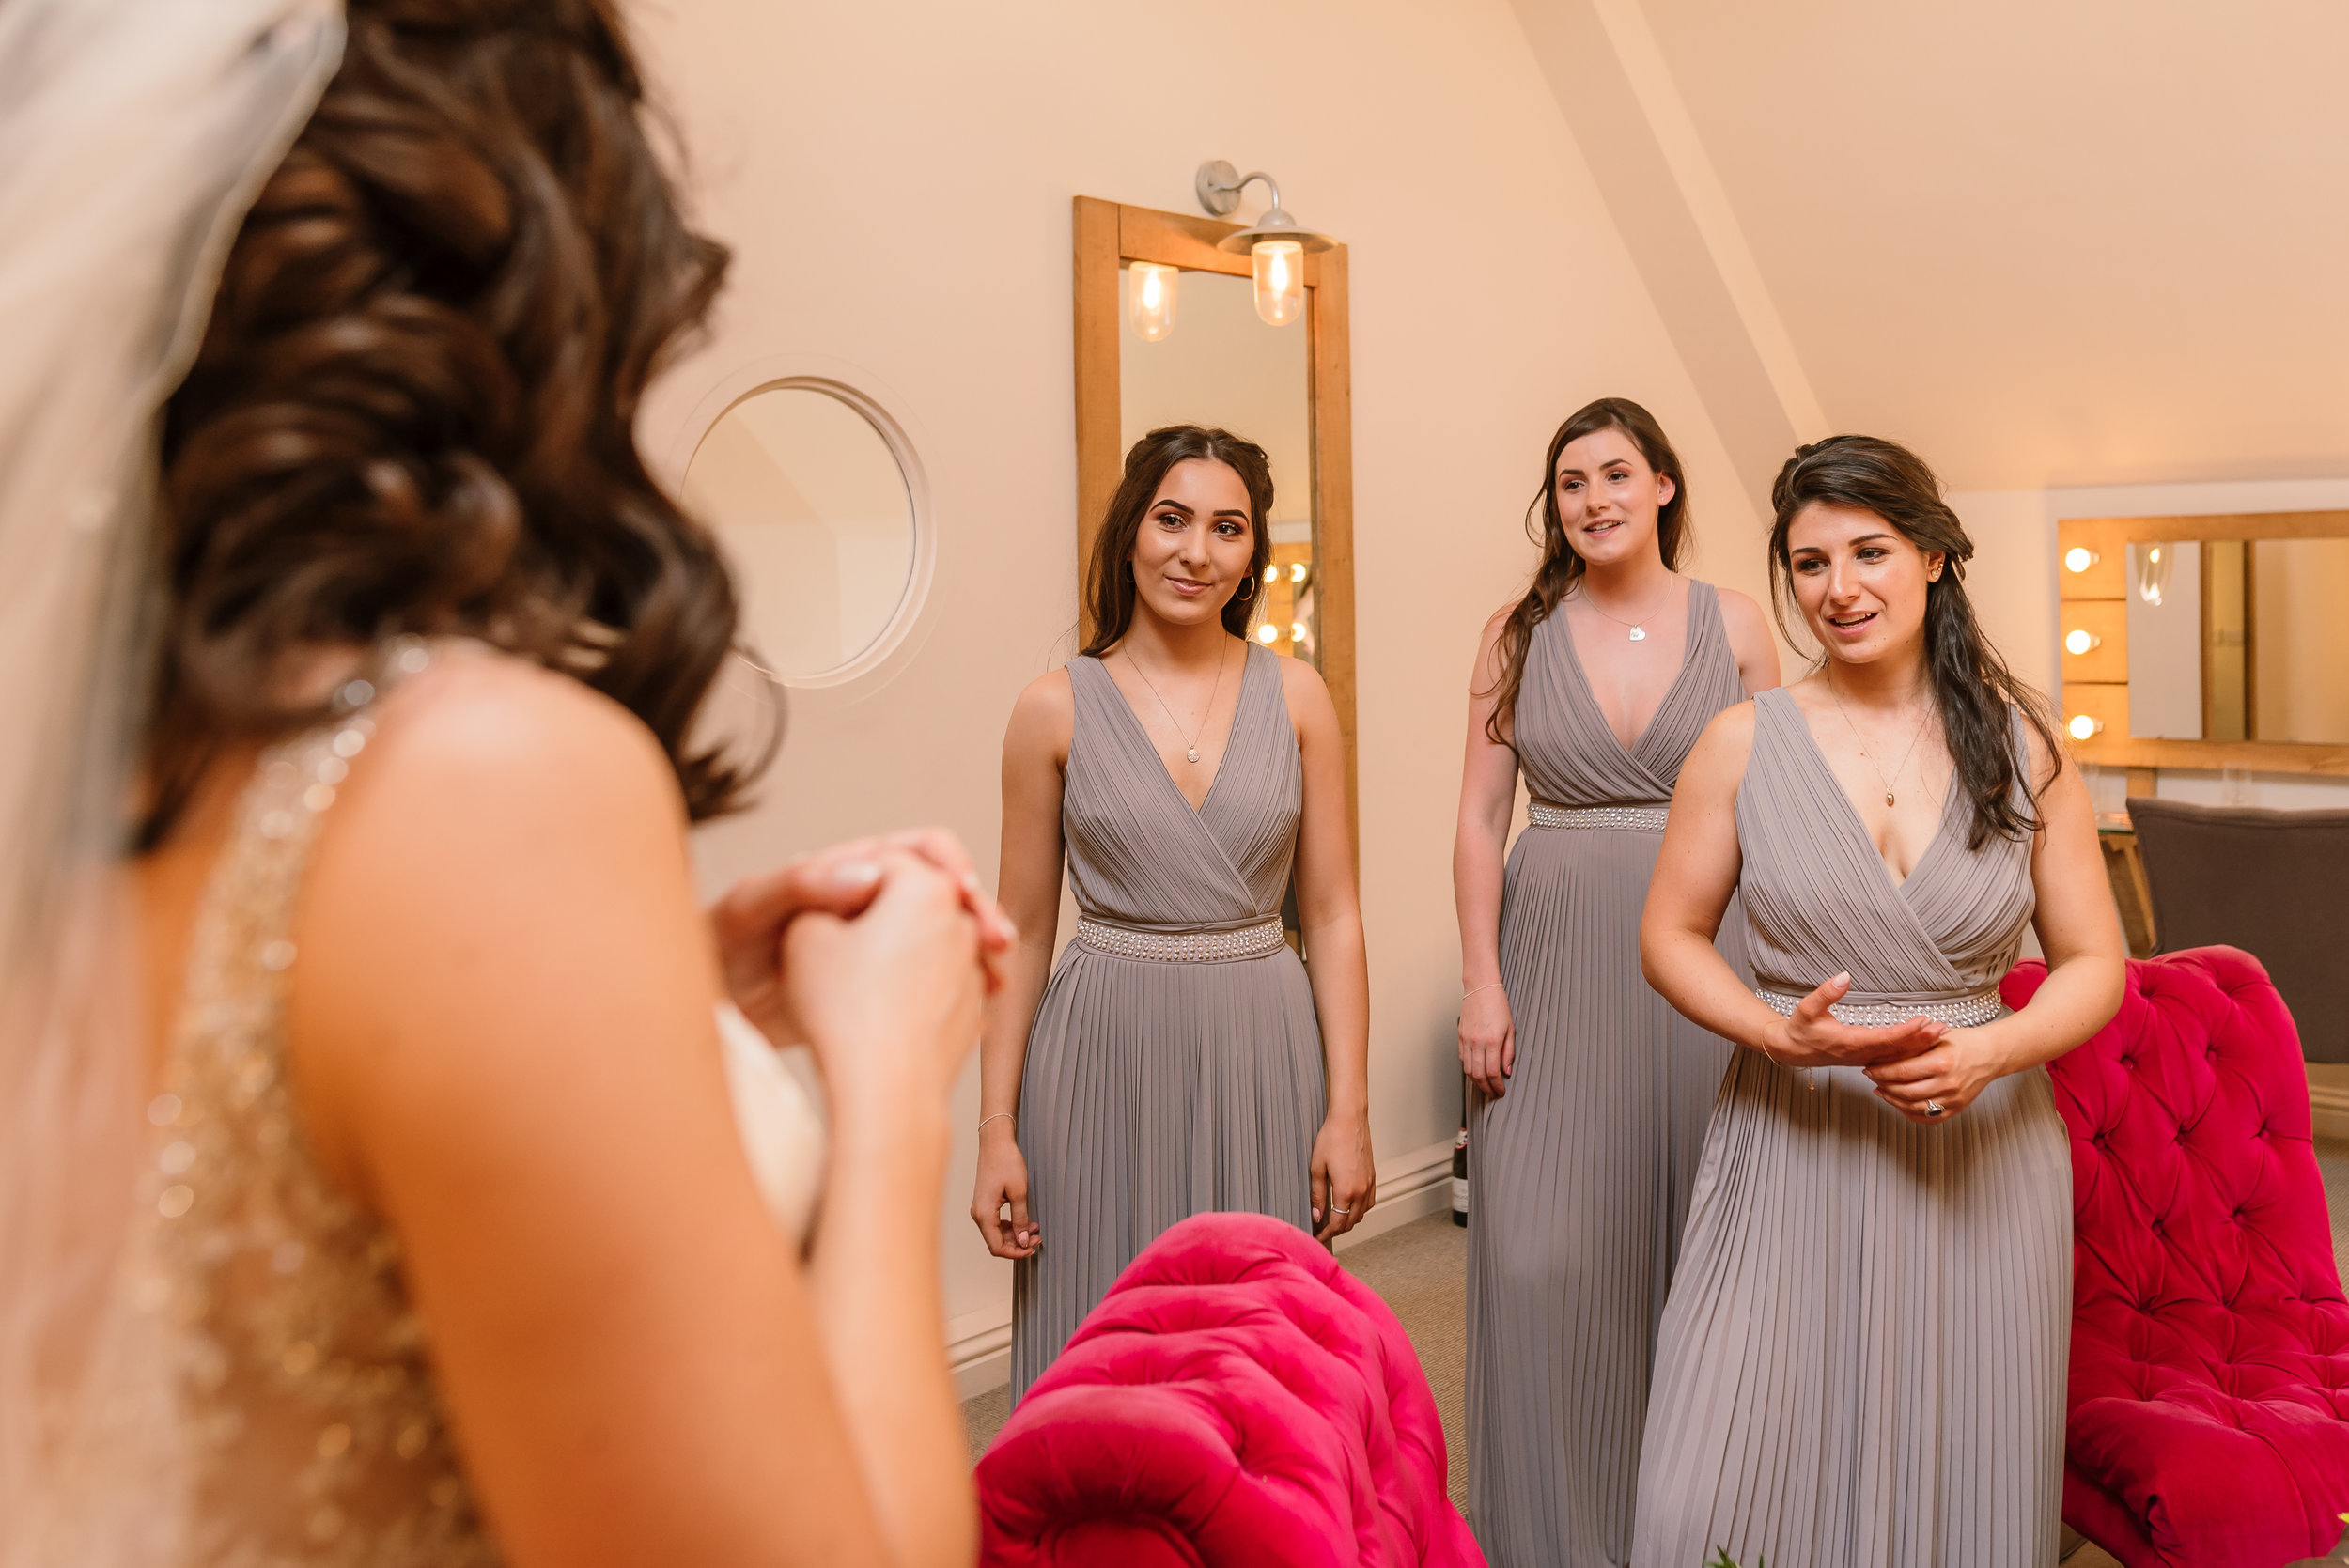 Sarah-Fishlock-Photography / Hampshire-wedding-photographer-hampshire / fleet-wedding-photographer-fleet / Millbridge-Court-Wedding-Photographer / Millbridge-Court-Wedding